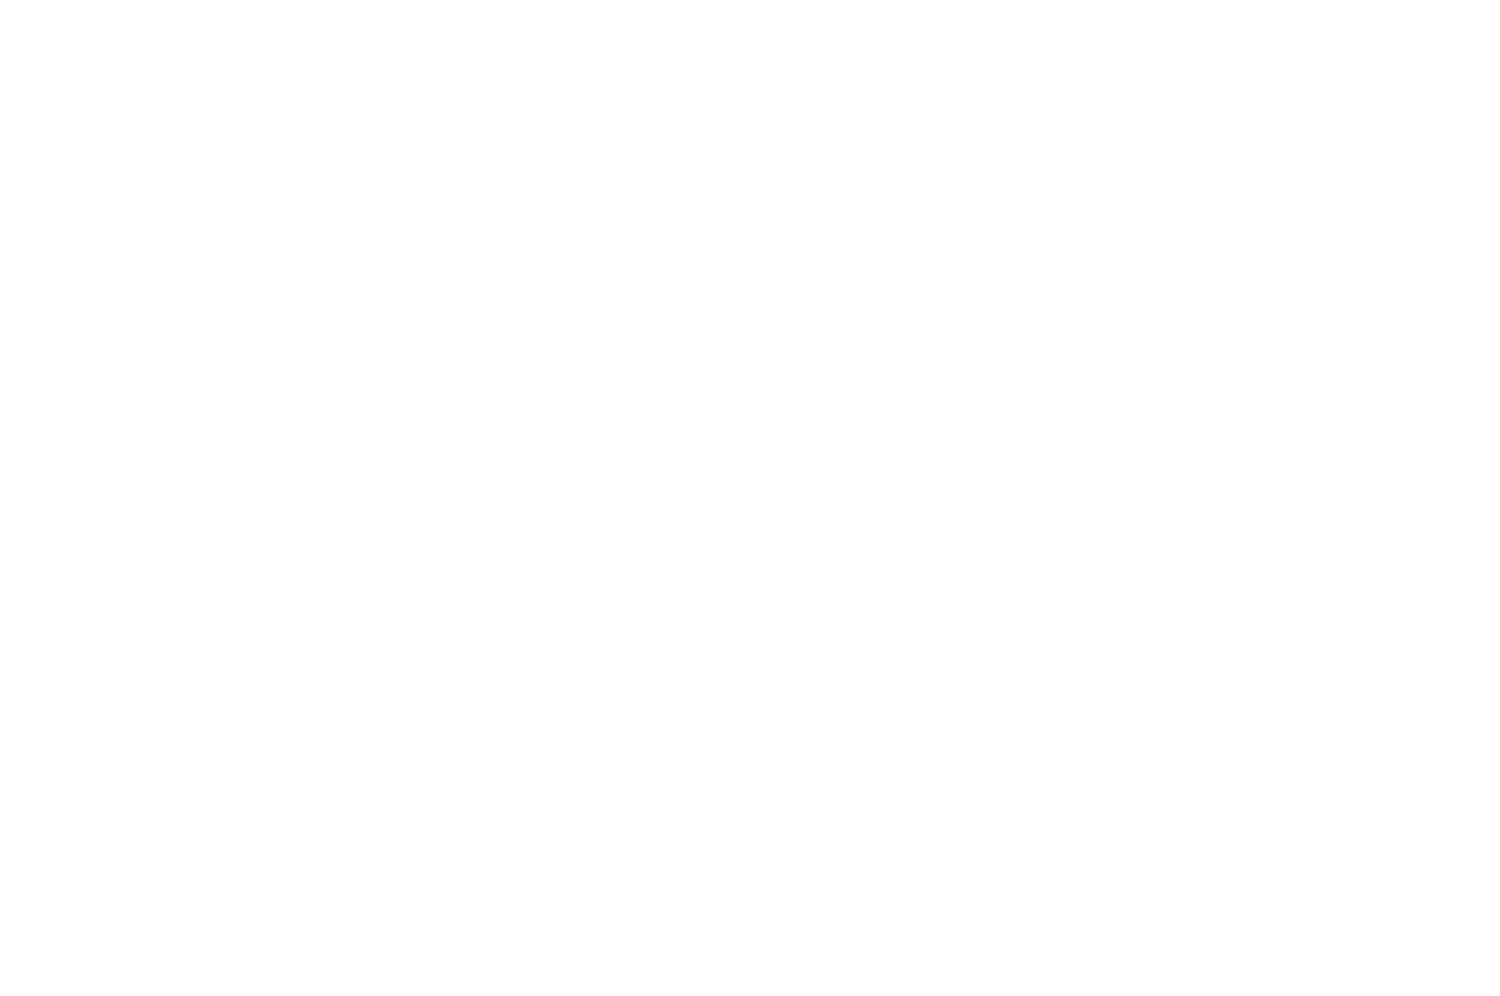 THE AVENUE WEST